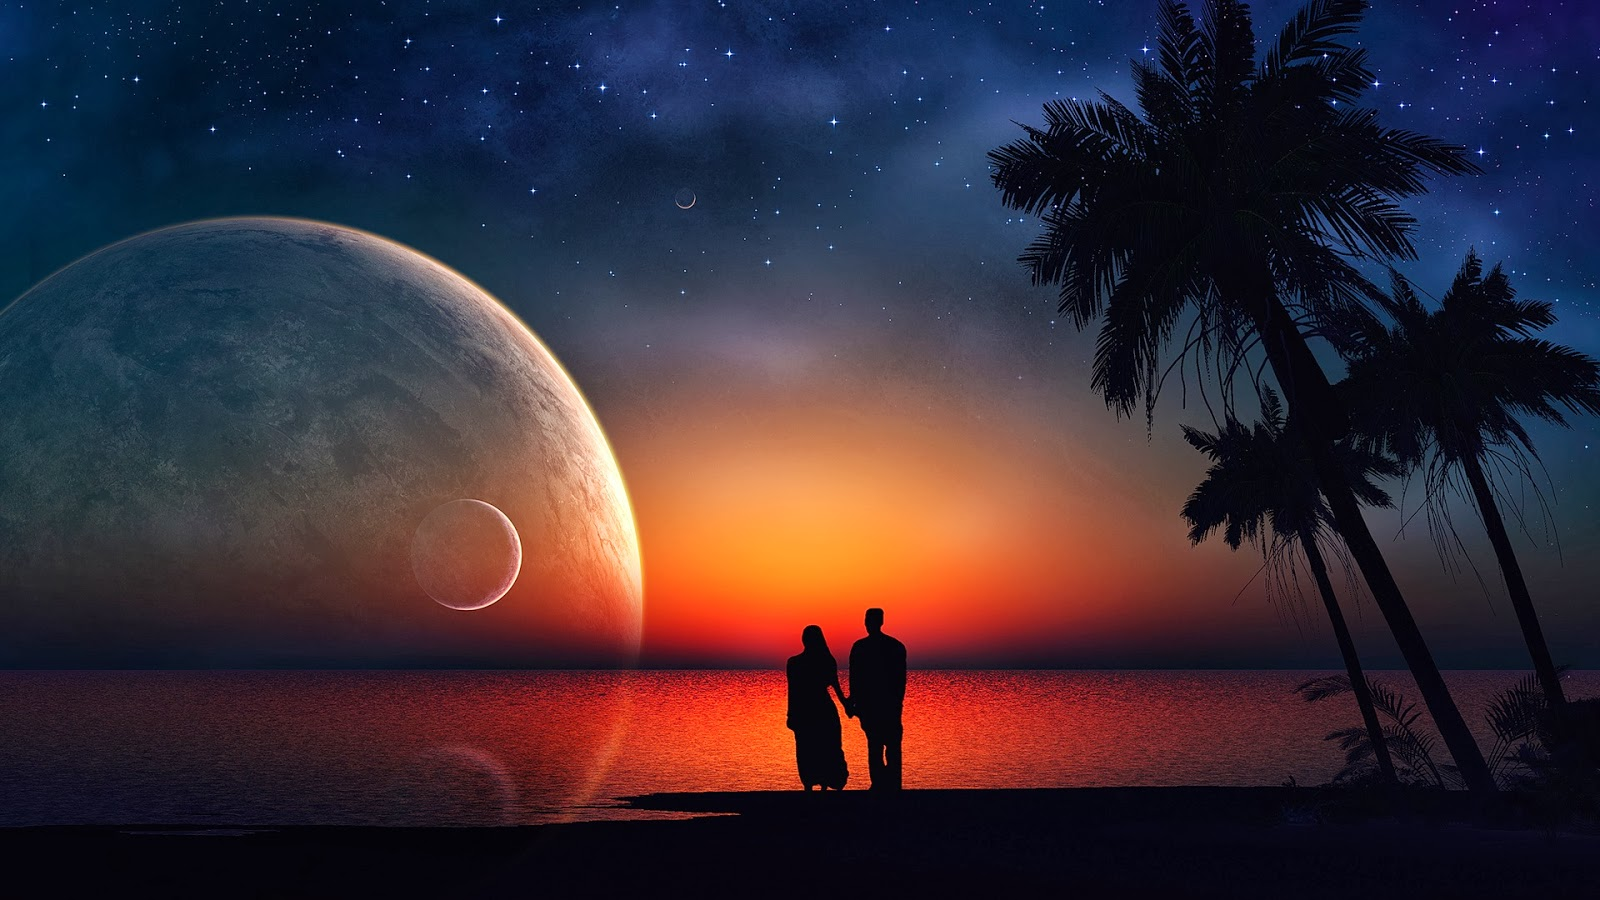 Love Romantic Full Hd Wallpaper : Romantic Love Pictures for her - Hug and Kiss, couples Dance in Moonlight Wallpaper, Images, Photos